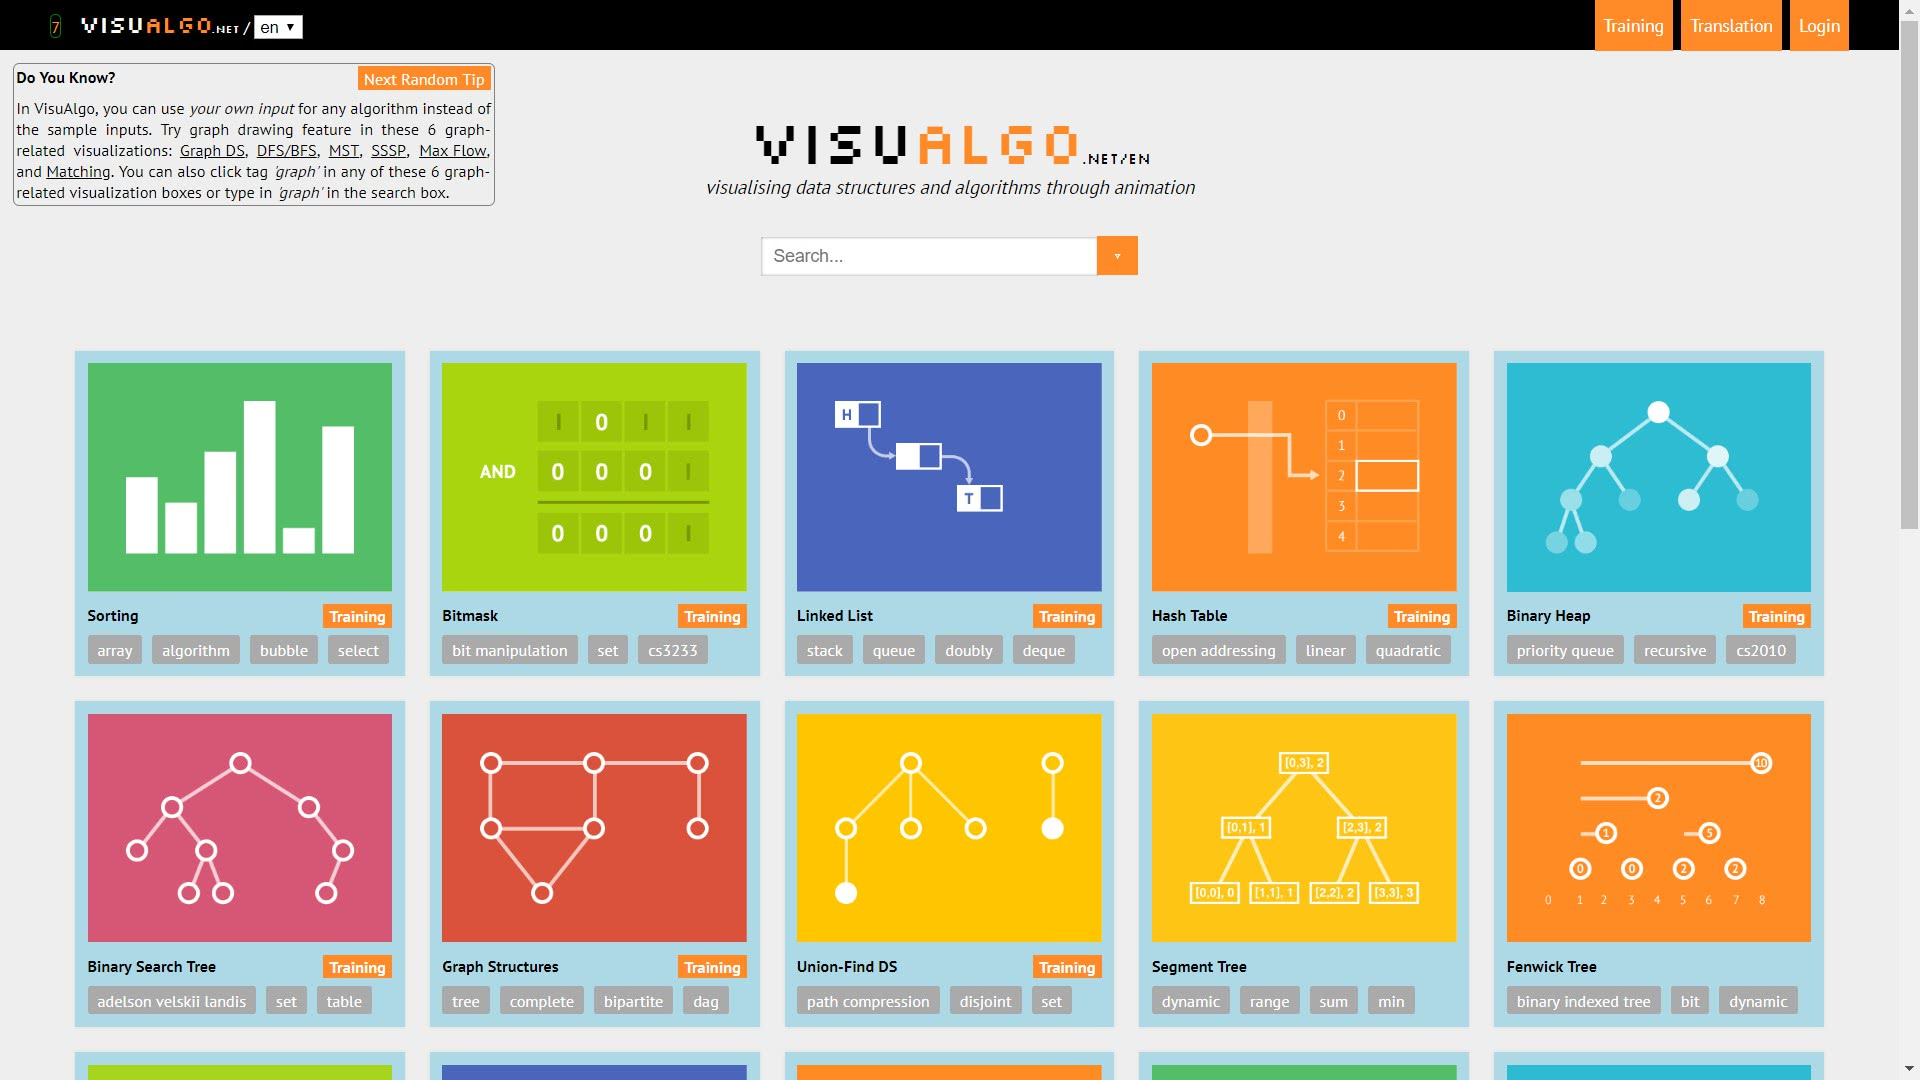 VisuAlgo